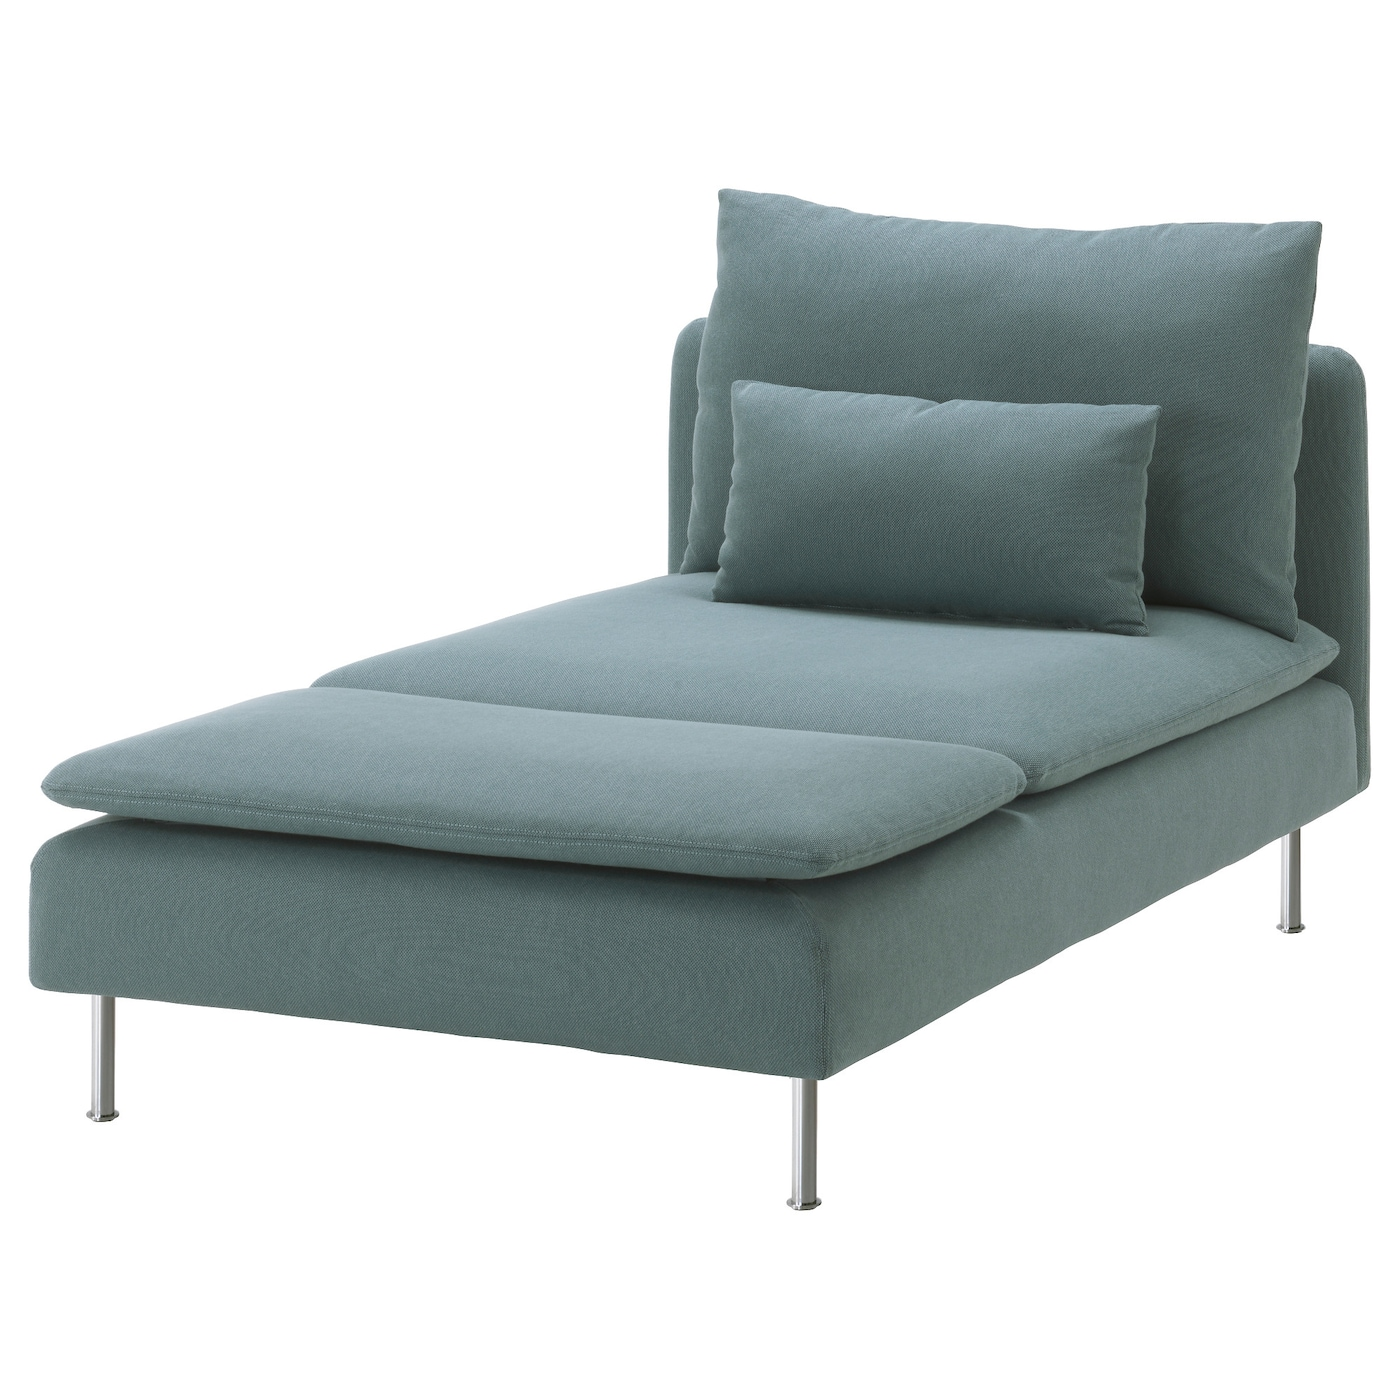 s derhamn chaise longue finnsta turquoise ikea. Black Bedroom Furniture Sets. Home Design Ideas